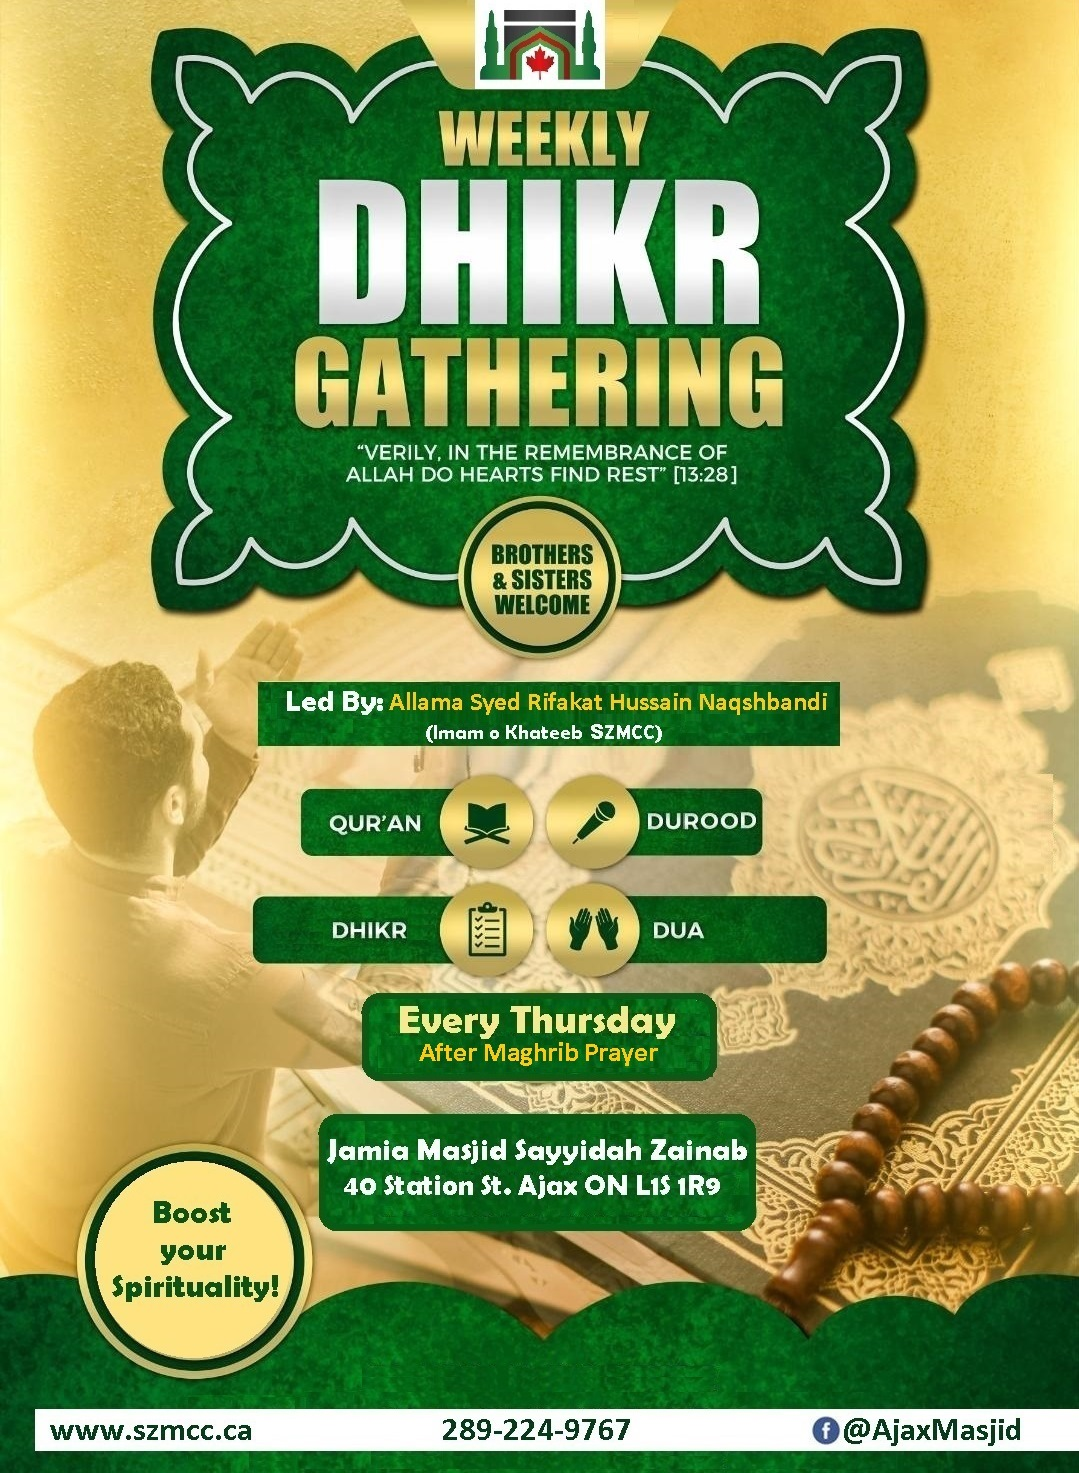 Weekly Mehfil e Dhikr – Every Thursday after Maghrib Prayer